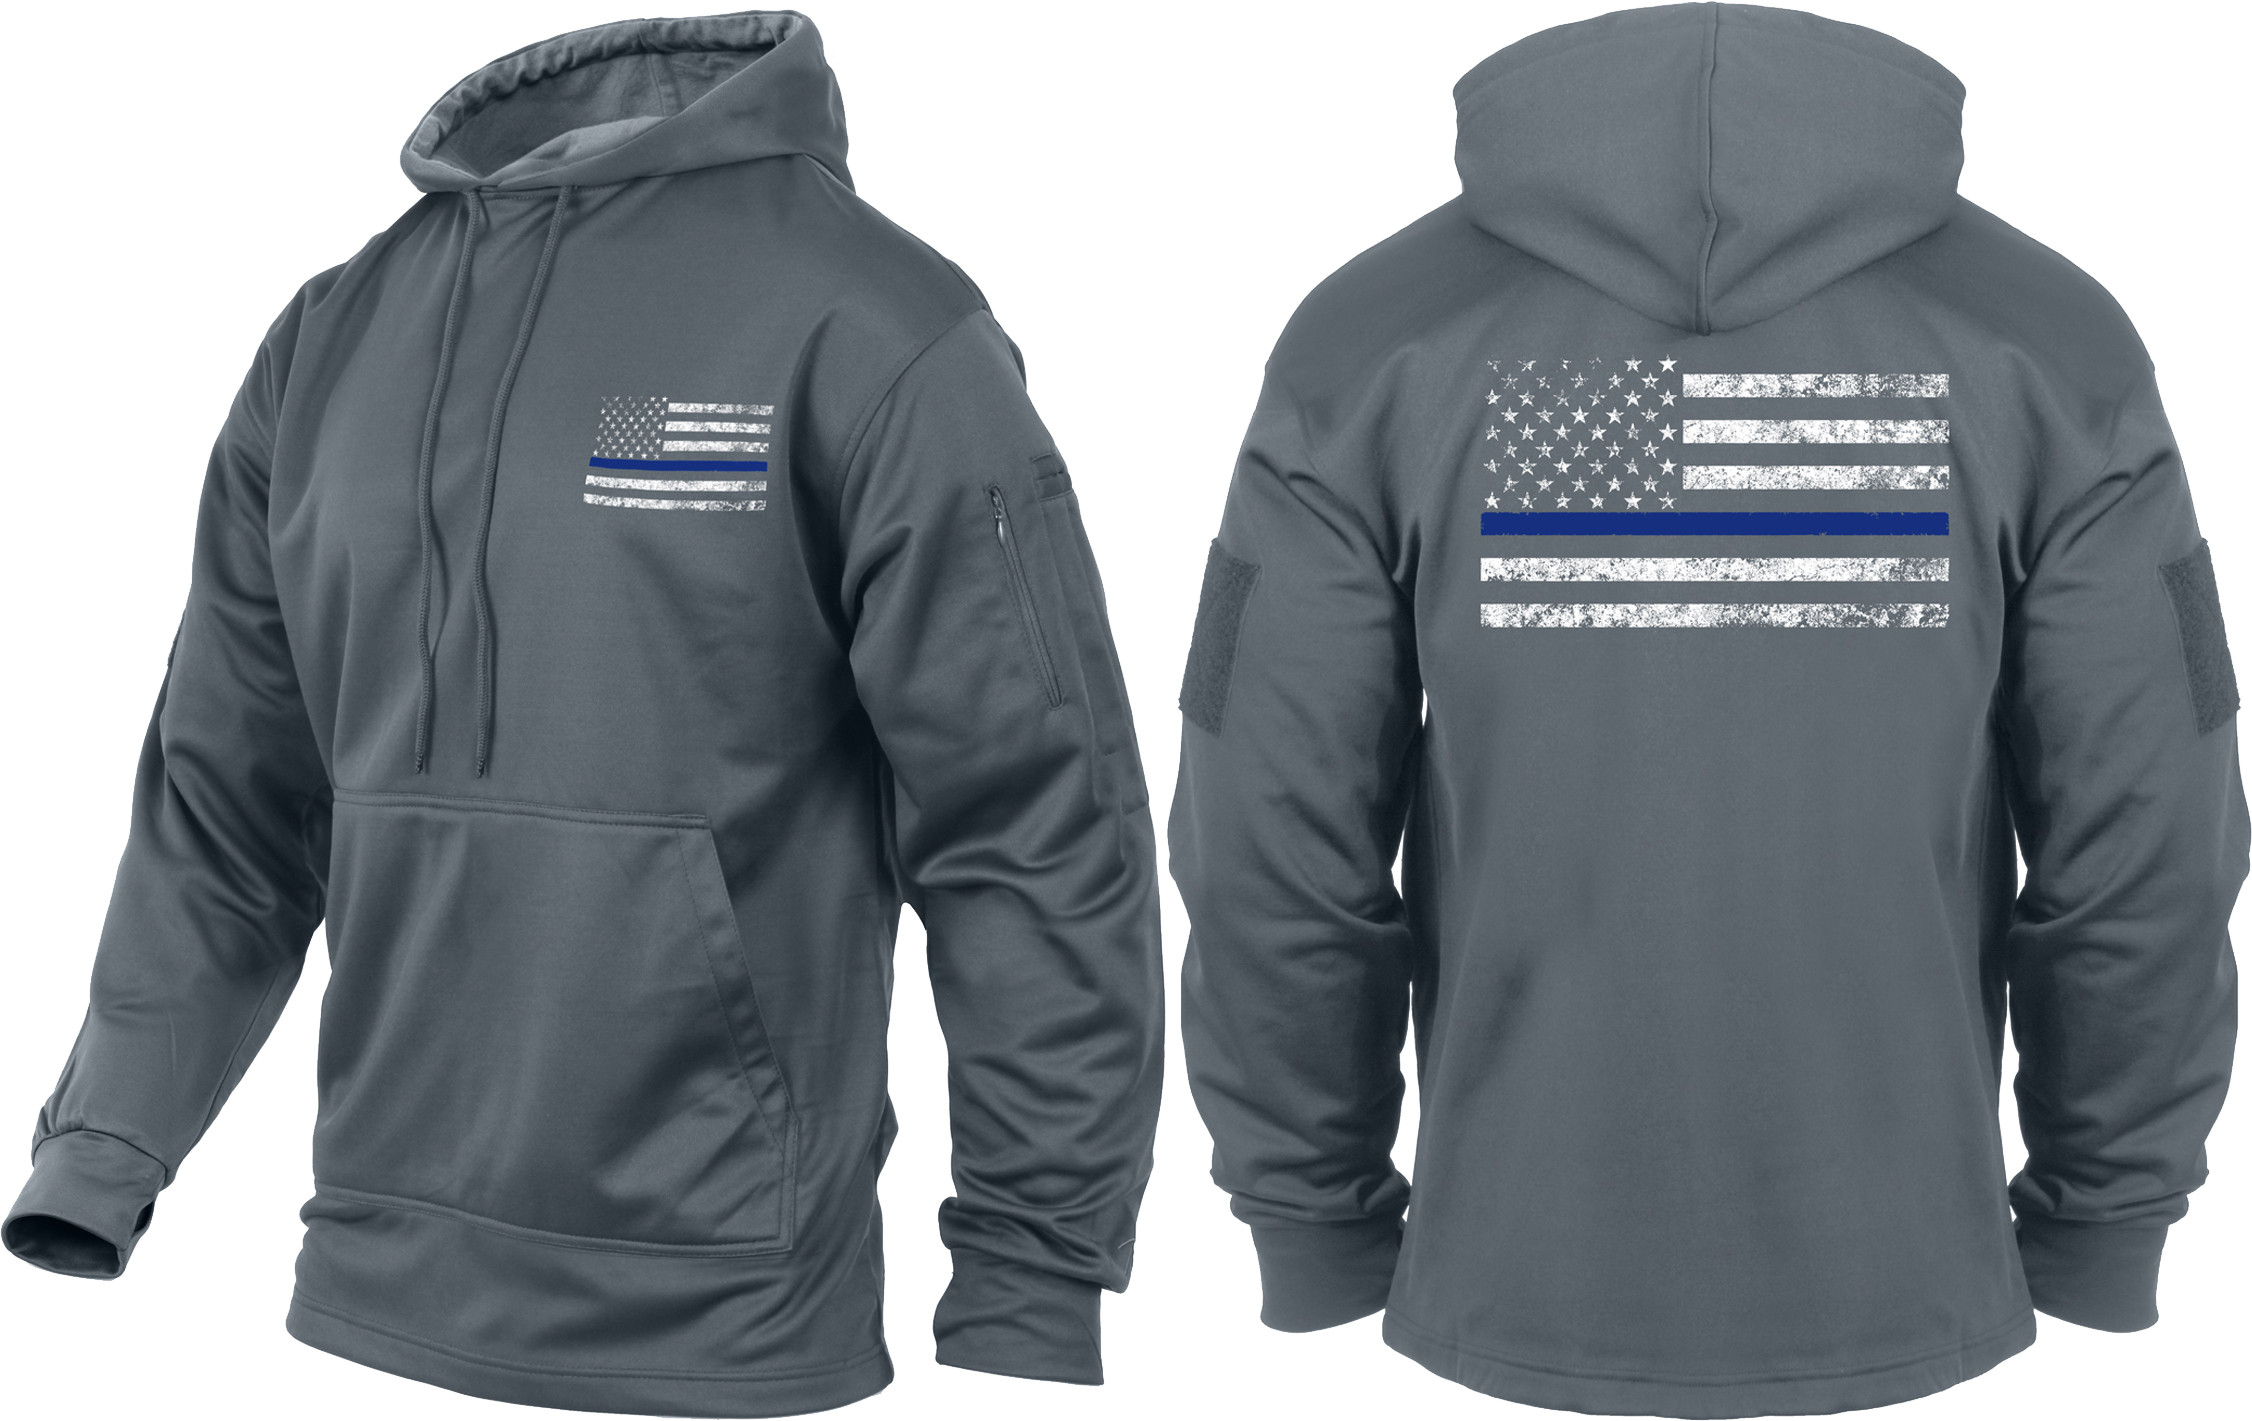 Grey Concealed Carry Subdued Thin Blue Line Hoodie Sweatshirt da1bc85bc42